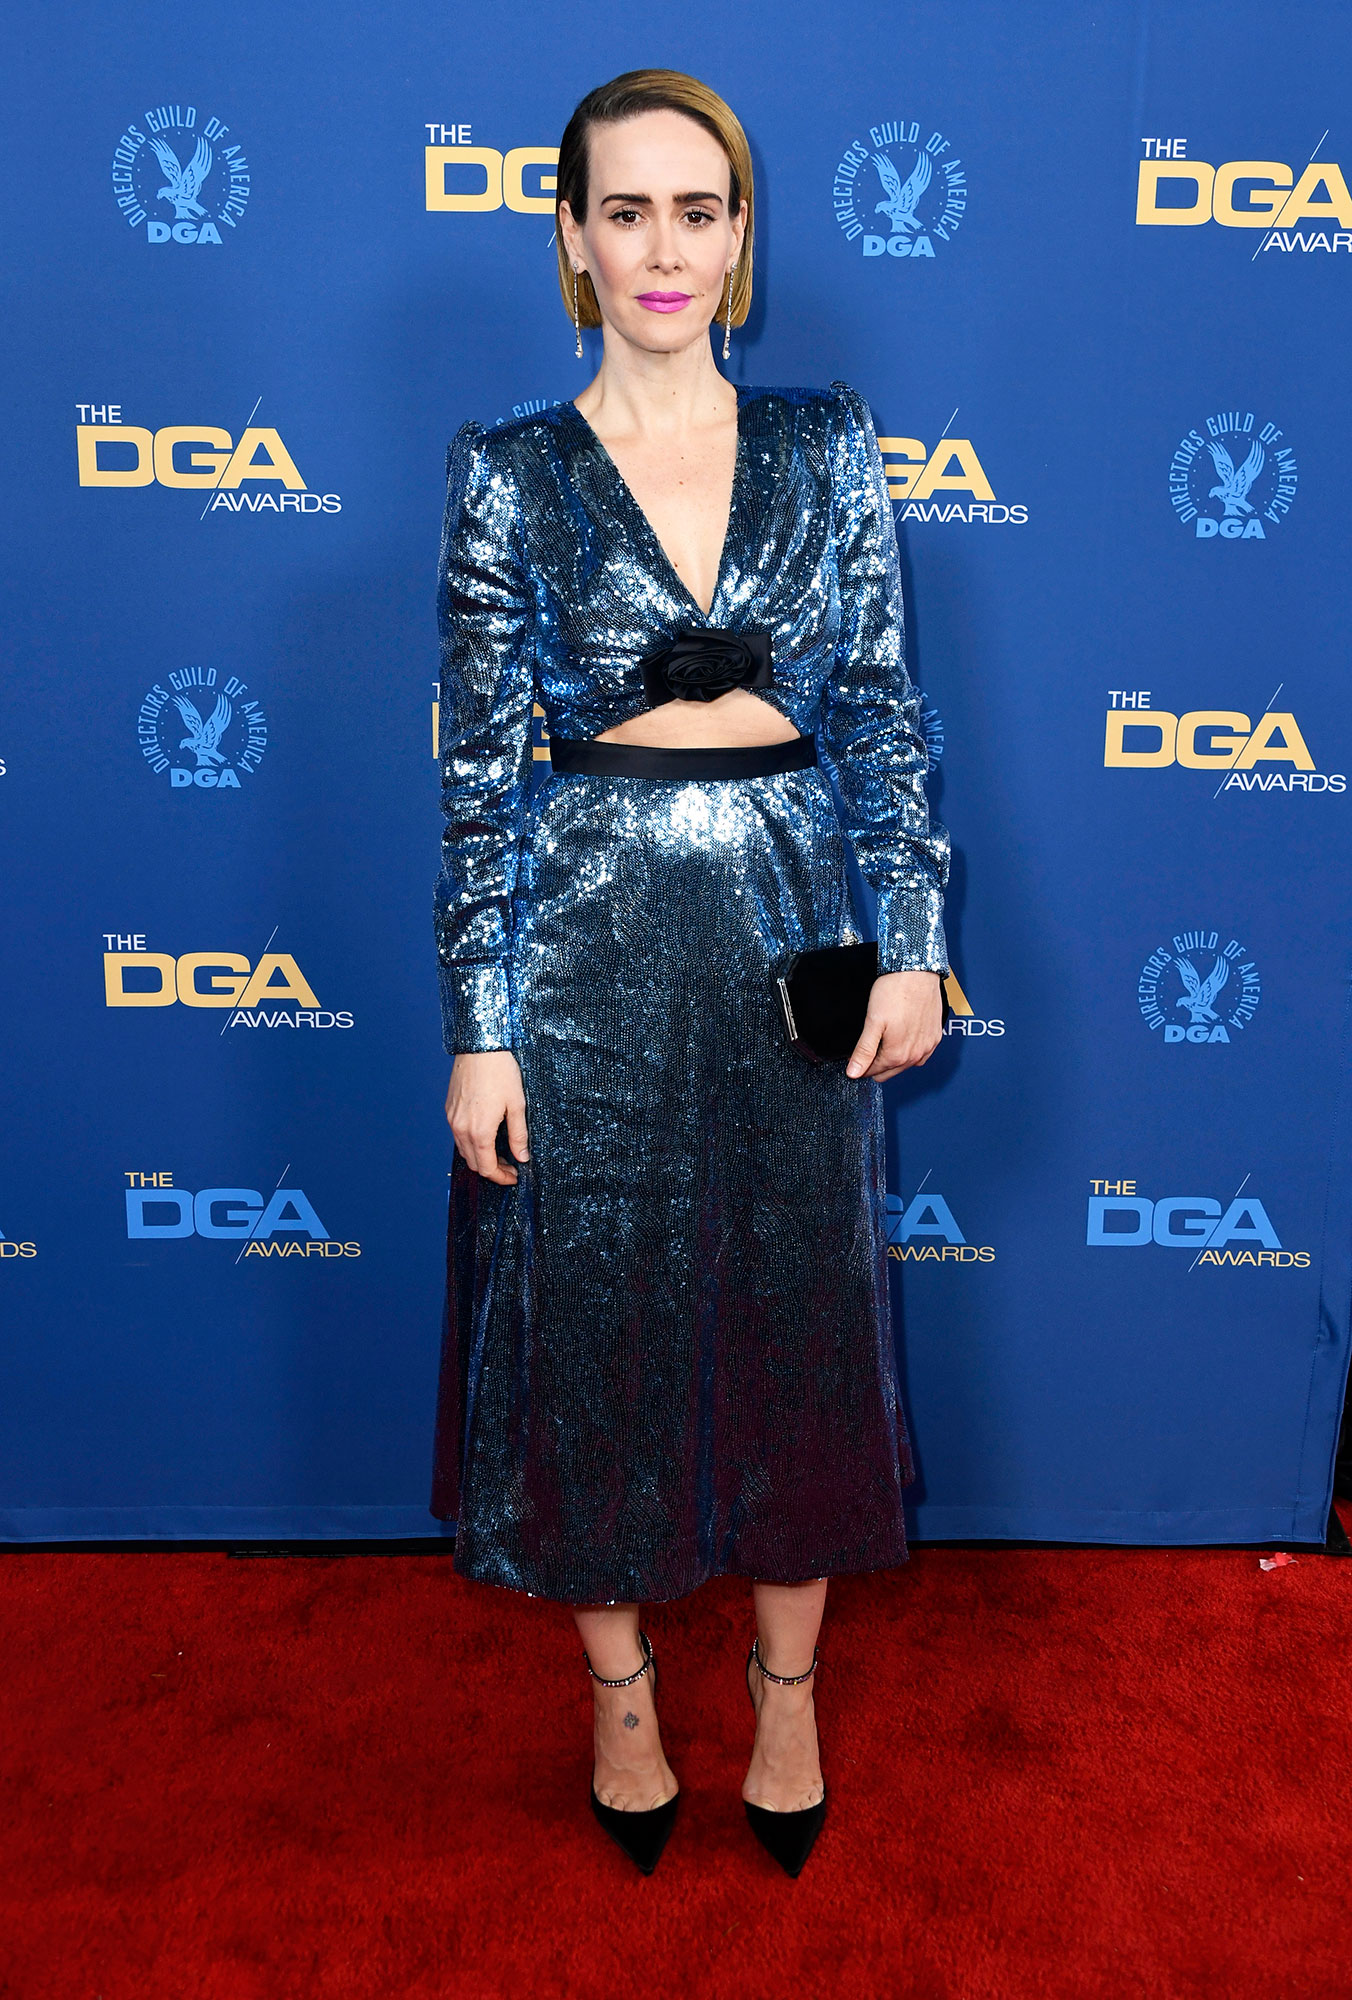 Sarah Paulson attends the 71st Annual Directors Guild Of America Awards at The Ray Dolby Ballroom at Hollywood - The American Horror Story actress looked gorgeous in a shiny blue dress with a cutout in the stomach that flashed just the smallest bit of skin.